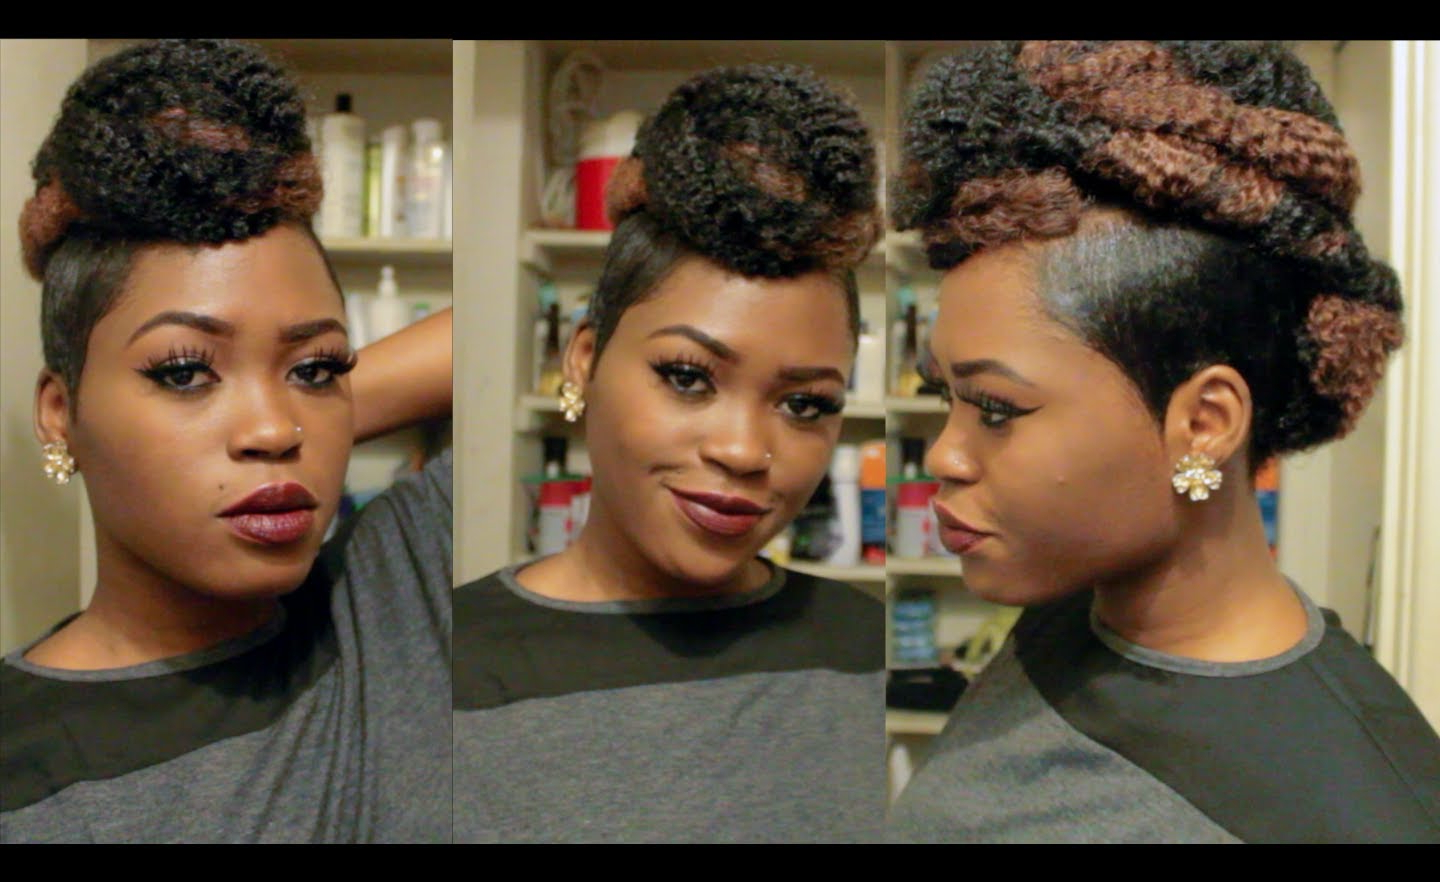 [%Favorite Cool Mohawk Updo Hairstyles With Regard To Mohawk Updo With Shaved Sides [Video] – Black Hair Information|Mohawk Updo With Shaved Sides [Video] – Black Hair Information Pertaining To Best And Newest Cool Mohawk Updo Hairstyles%] (View 1 of 20)